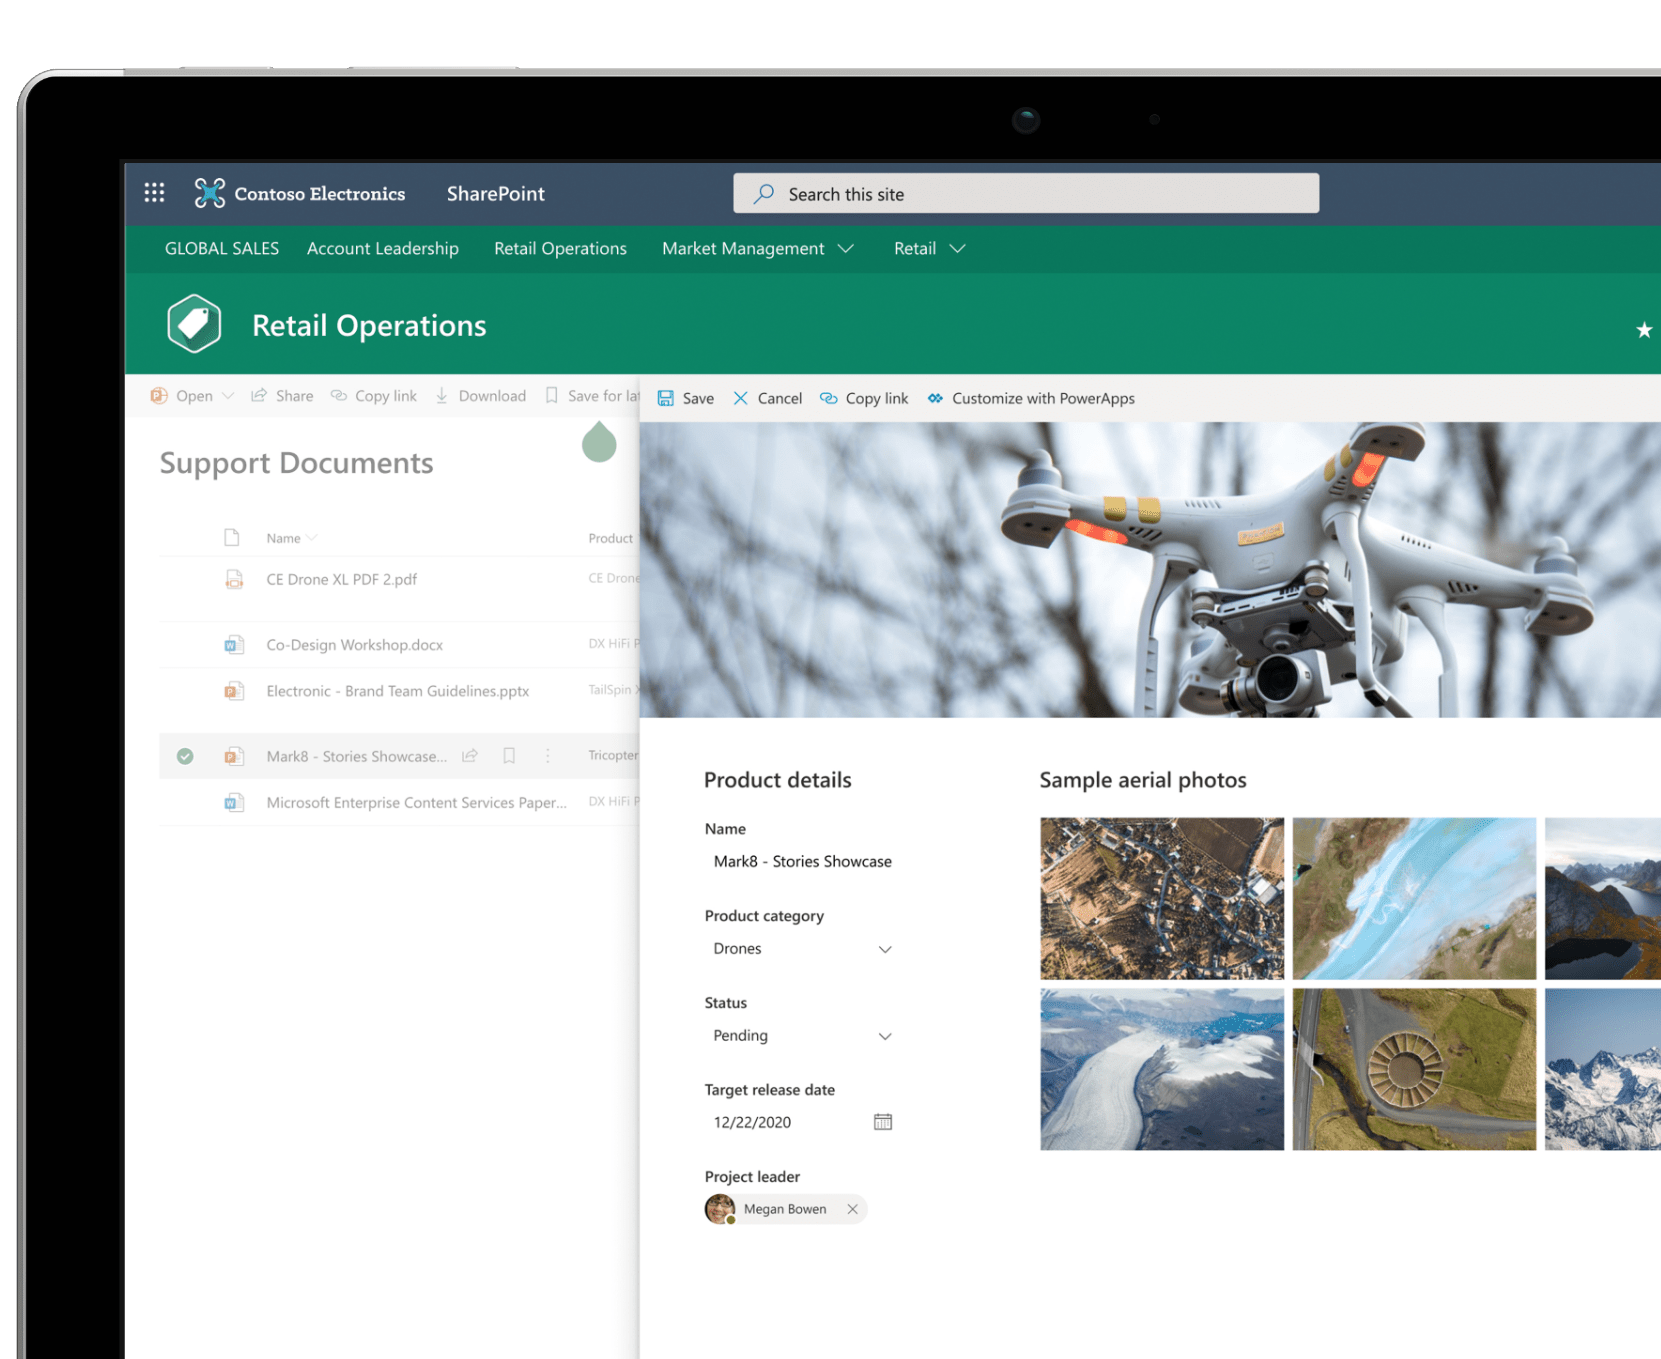 SharePoint Has Powerful Features To Help Your Team